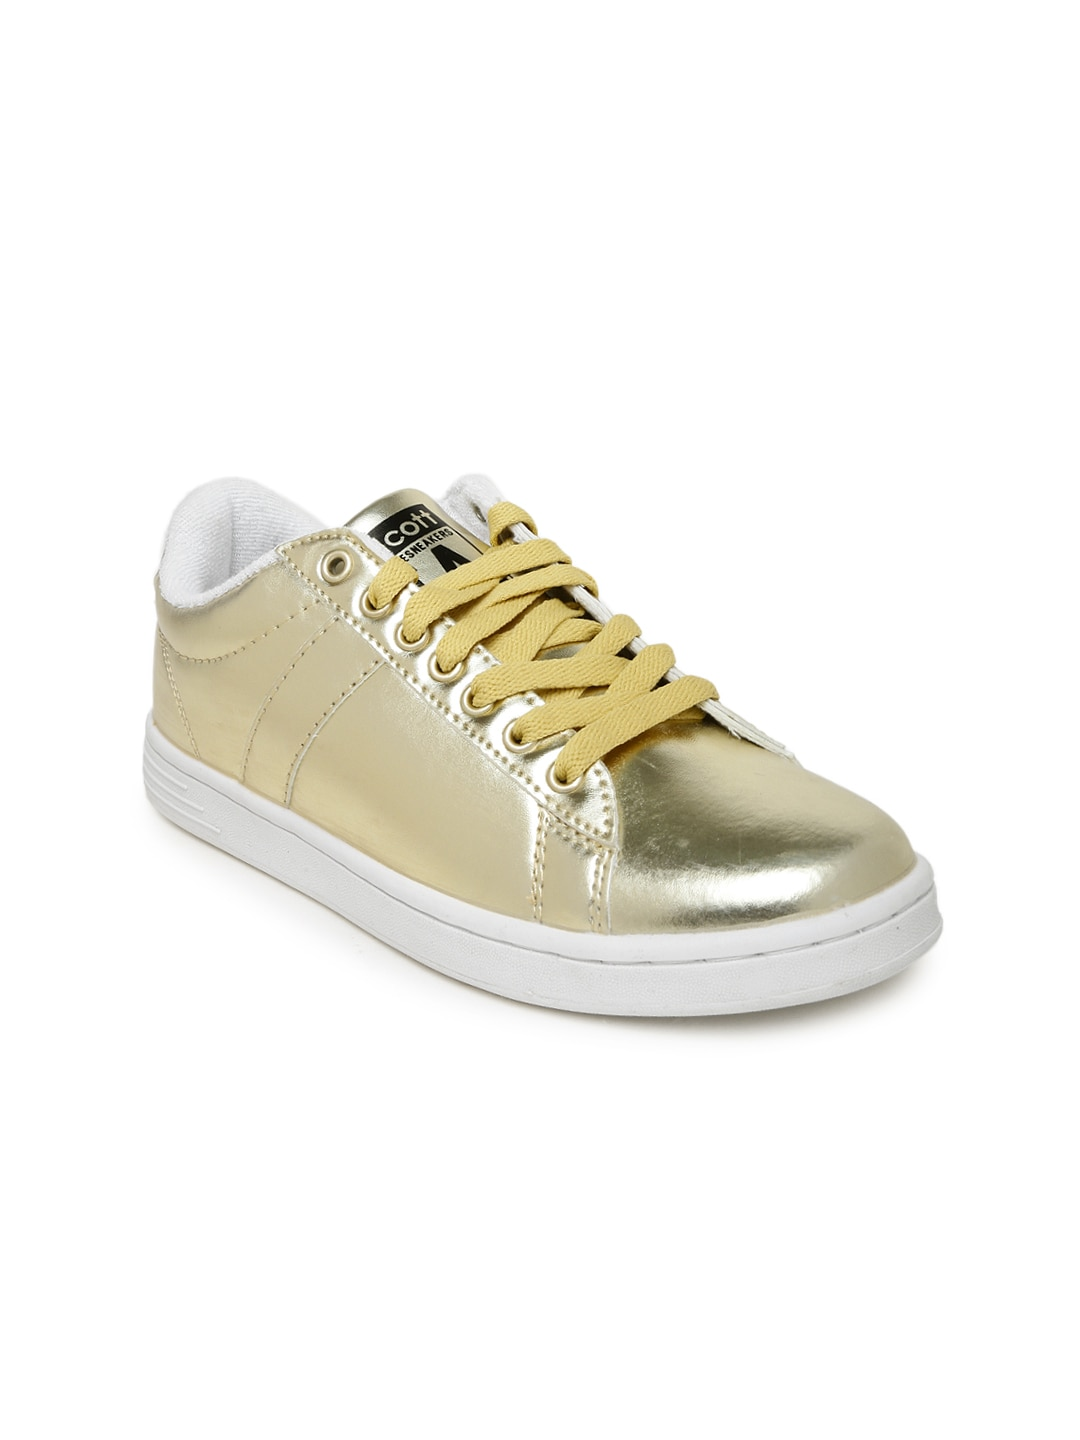 ALCOTT Women Muted Gold-Toned Scarpa Ginnica Sneakers image